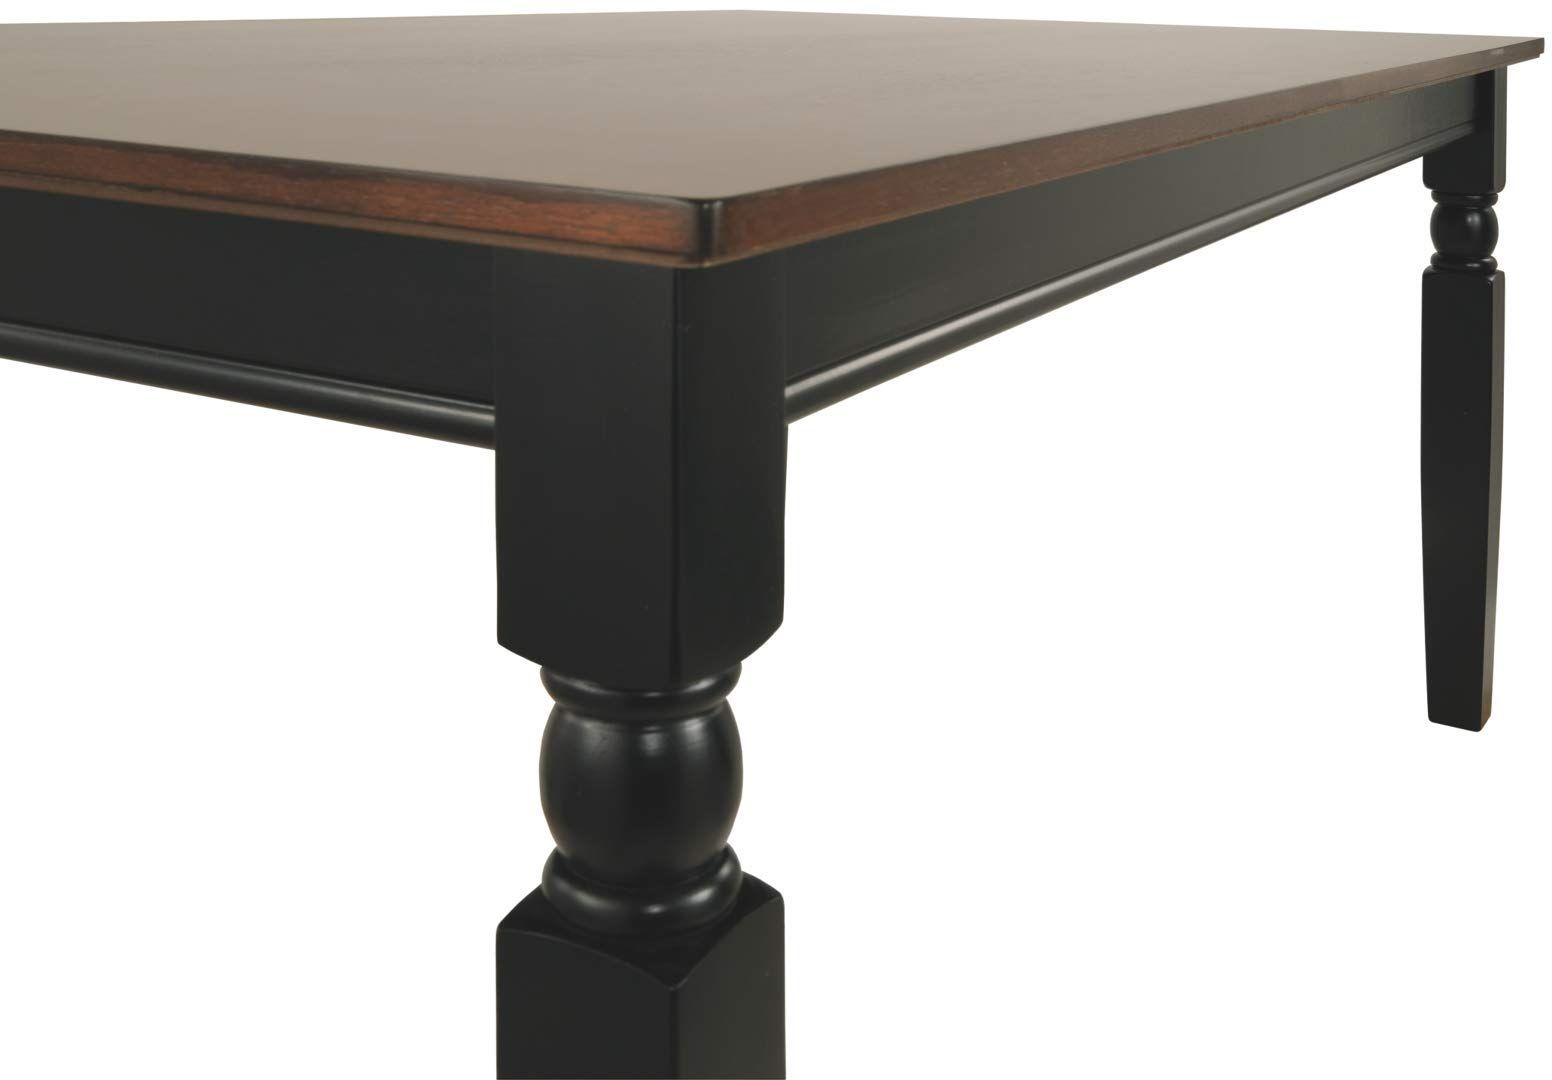 Signature Design By Ashley Owingsville Rectangular Dining Room Table Casual Styl Dining Room Table Rectangular Dining Room Table Signature Design By Ashley [ 1080 x 1552 Pixel ]